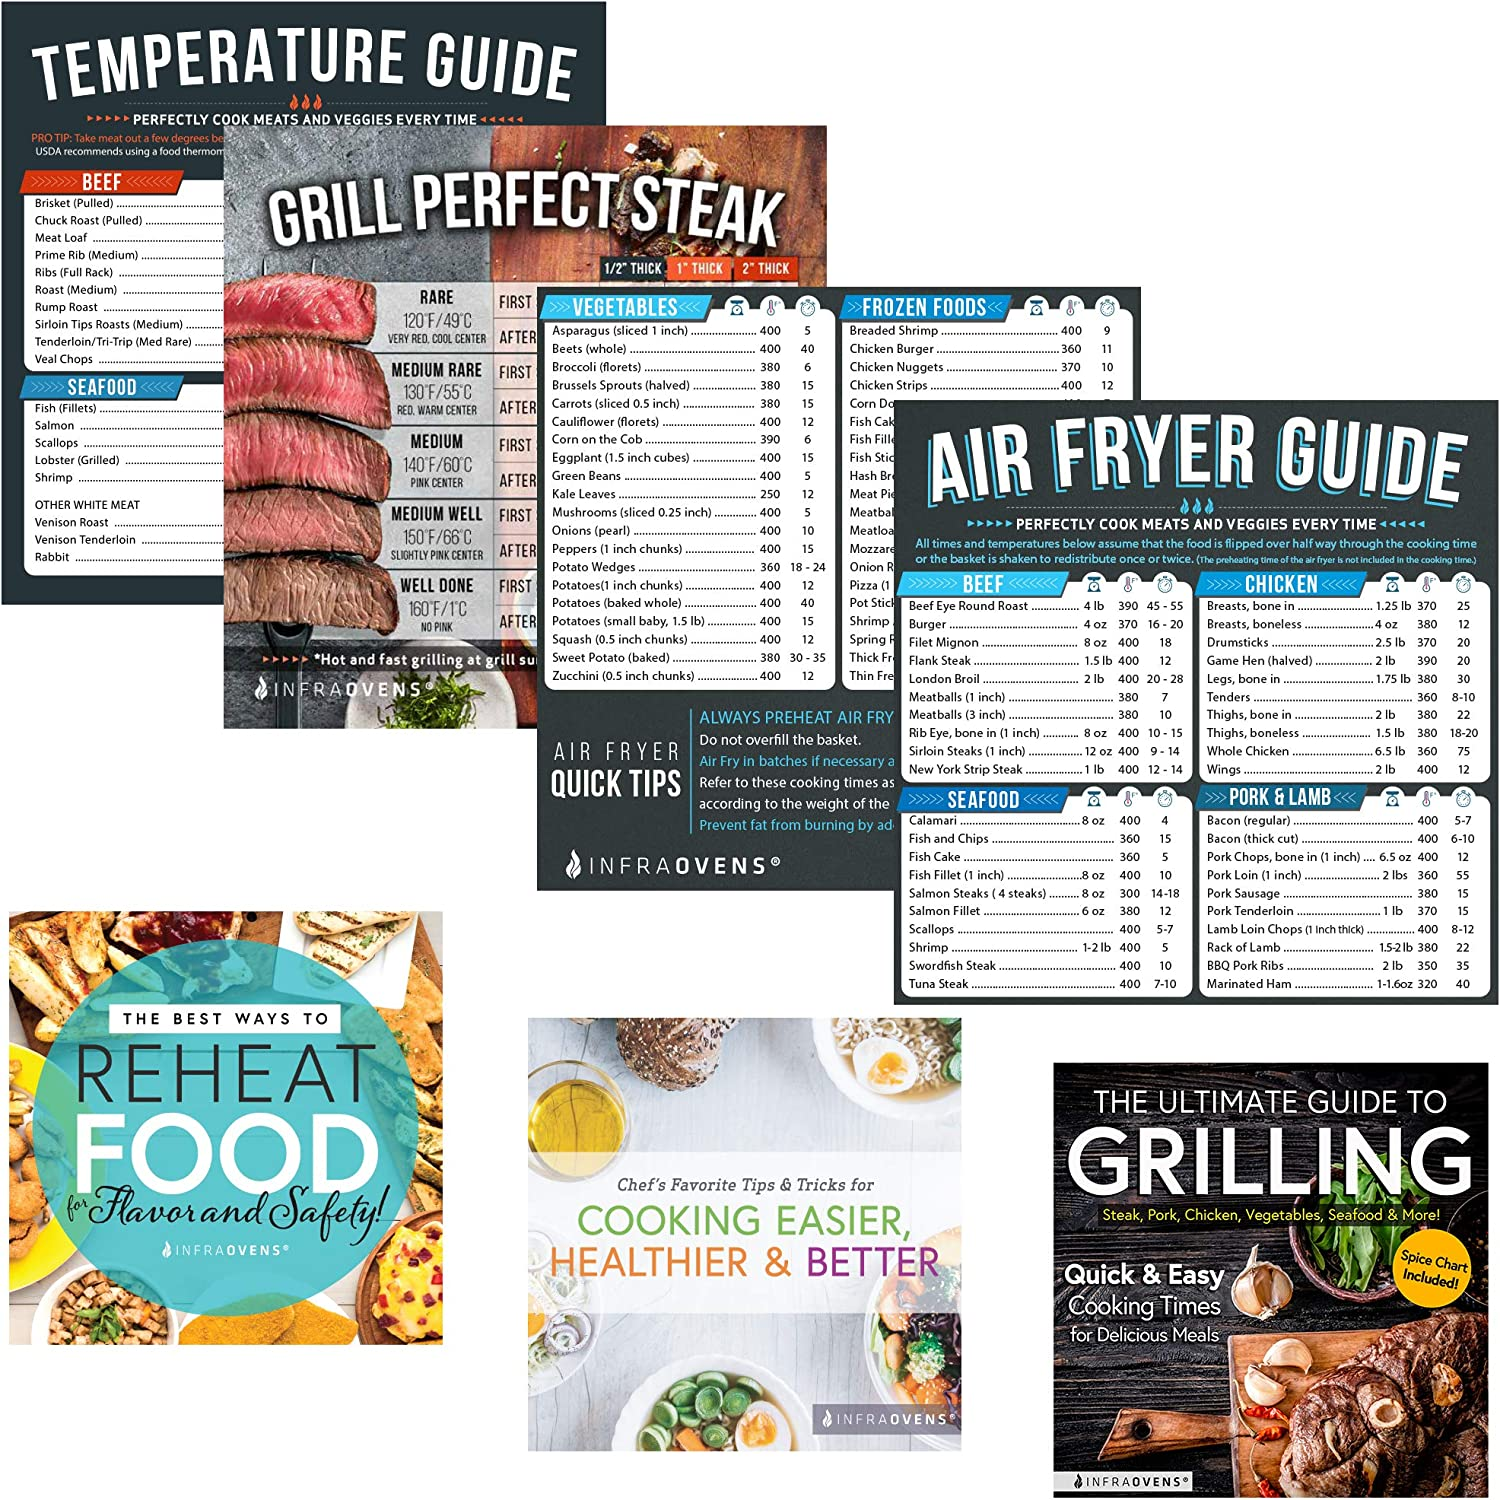 Toaster Oven Cheat Sheet Cooking Times Chart Magnet Accessories, Baking & Grilling Cookbooks, Food Temperature Guide Compatible with Breville, Cuisinart, Oster, Hamilton Beach, Kitchenaid +More